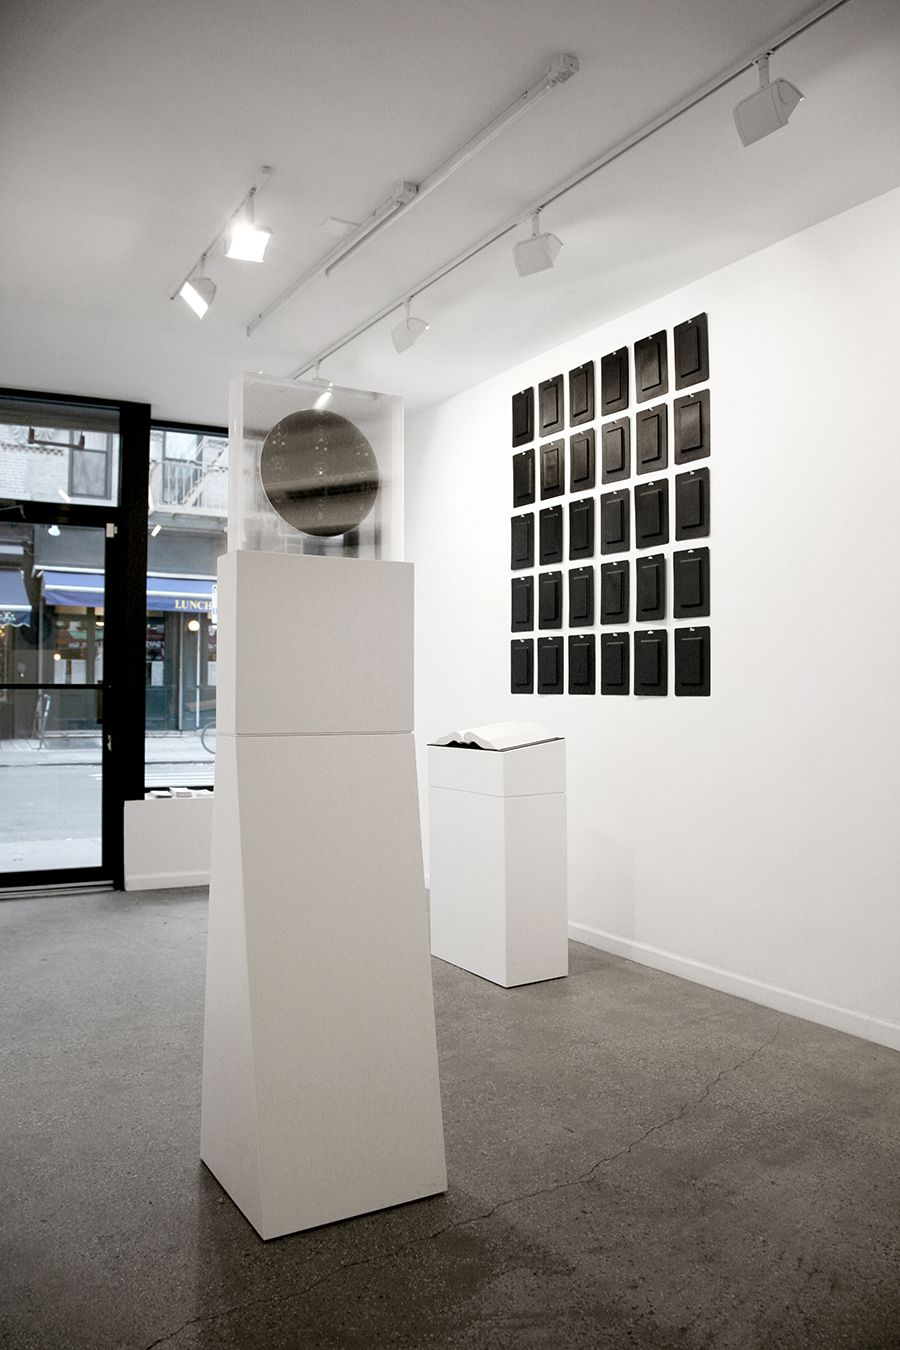 OCCULTER - Occulter Exhibitions